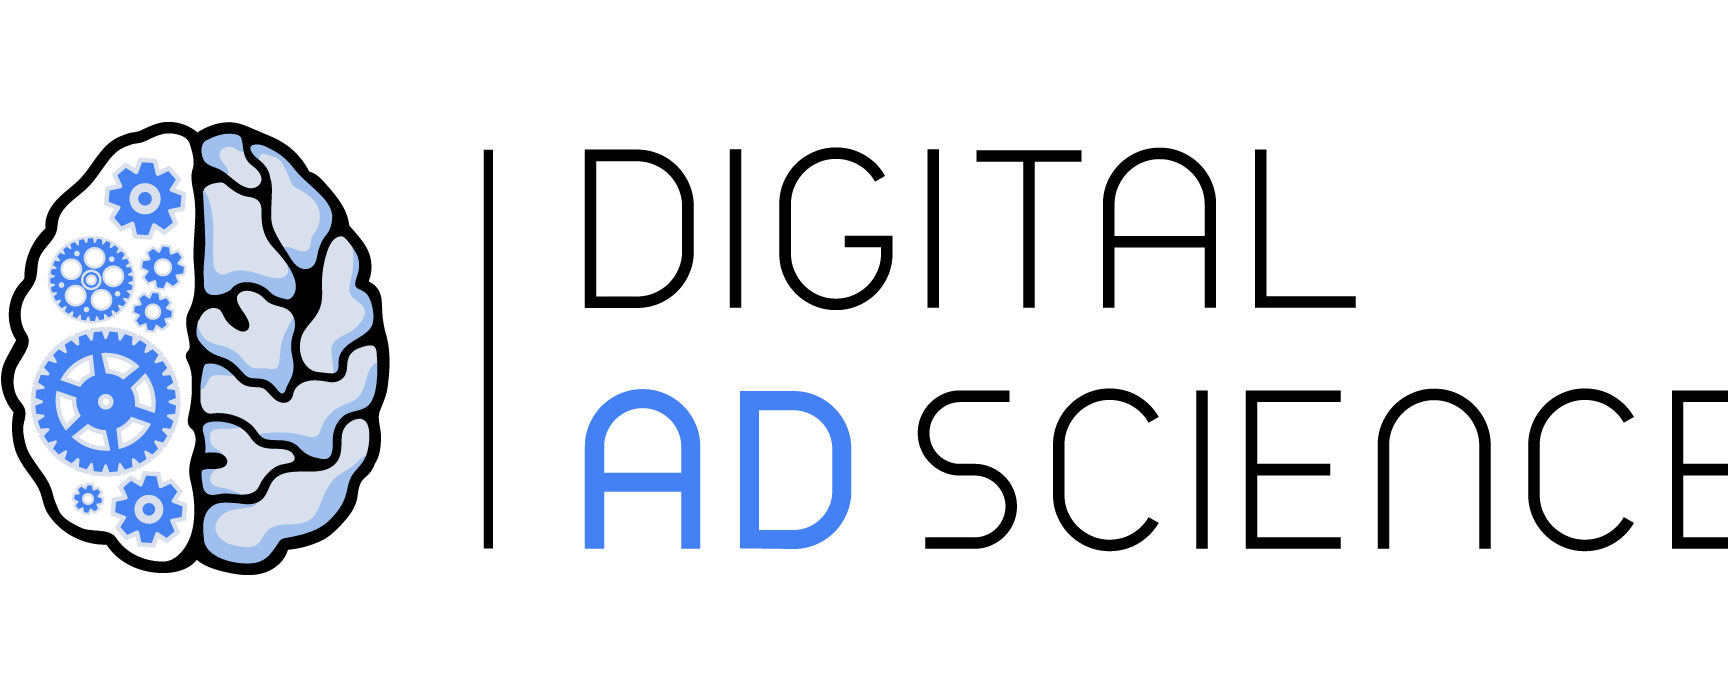 Digital Ad Science | Smart Digital Marketing